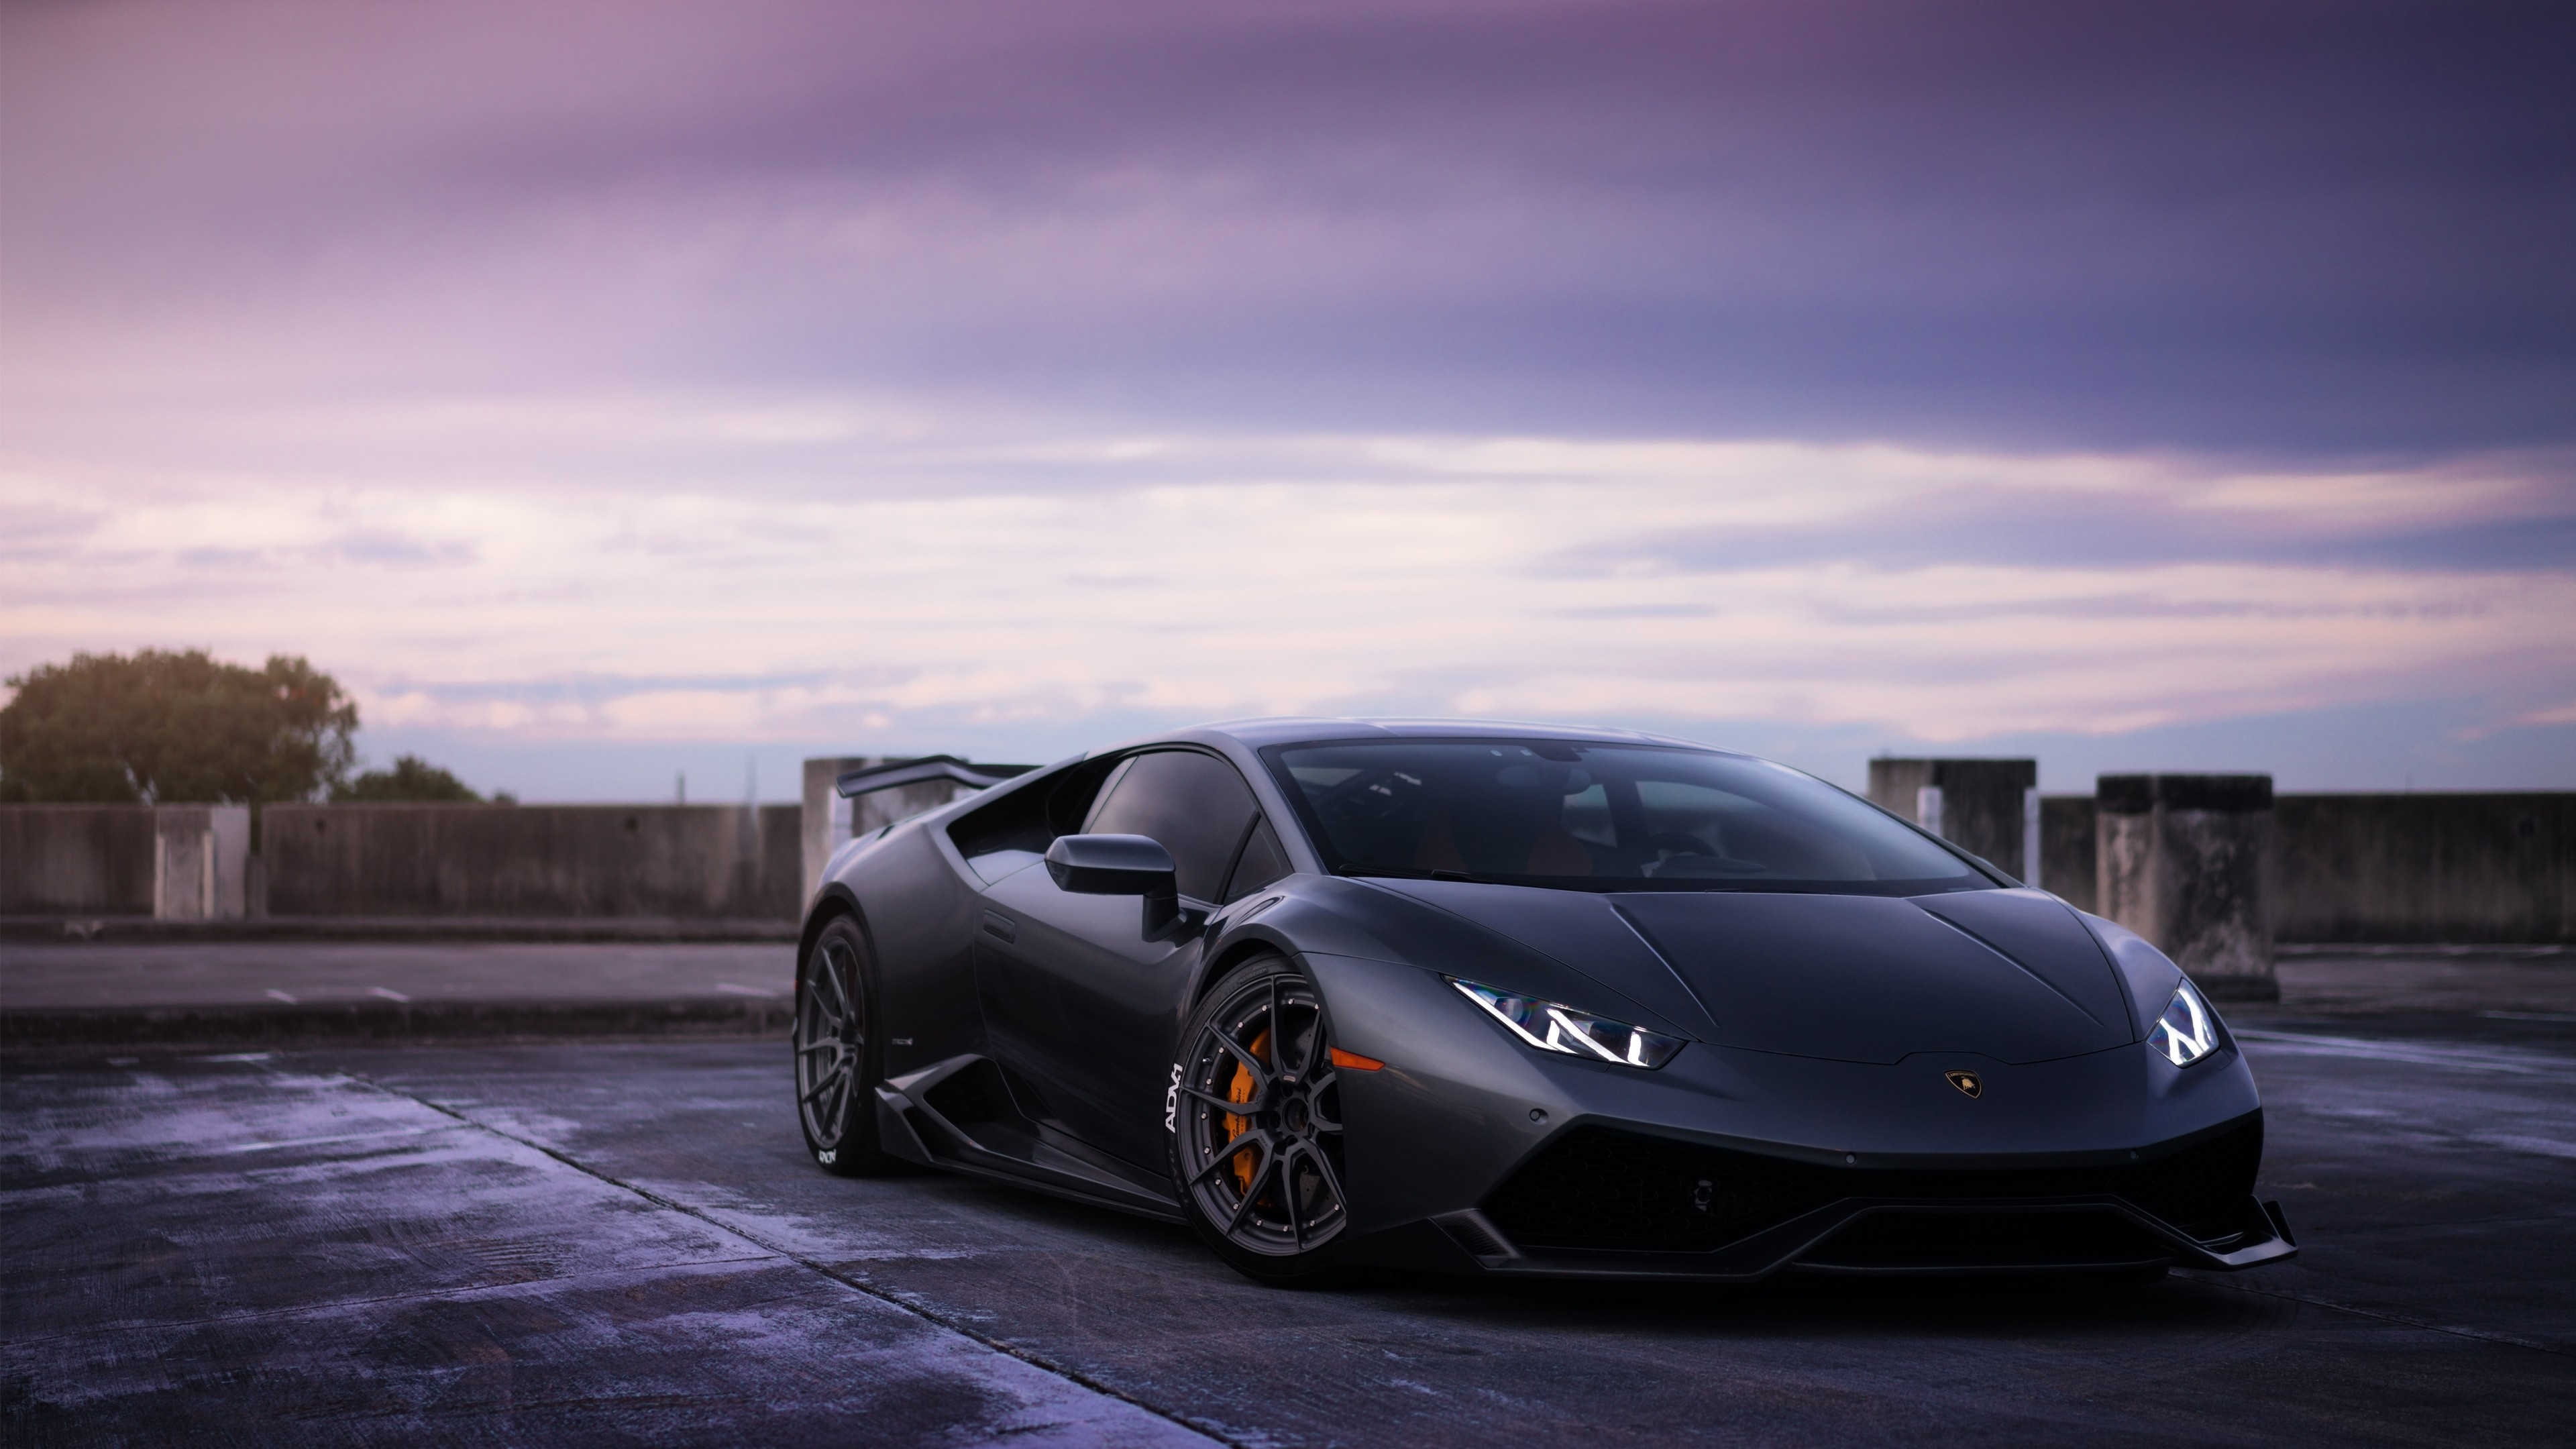 ultra hd 4k resolutions 3840 x 2160 original wallpaper lamborghini huracan - Lamborghini Huracan Wallpaper